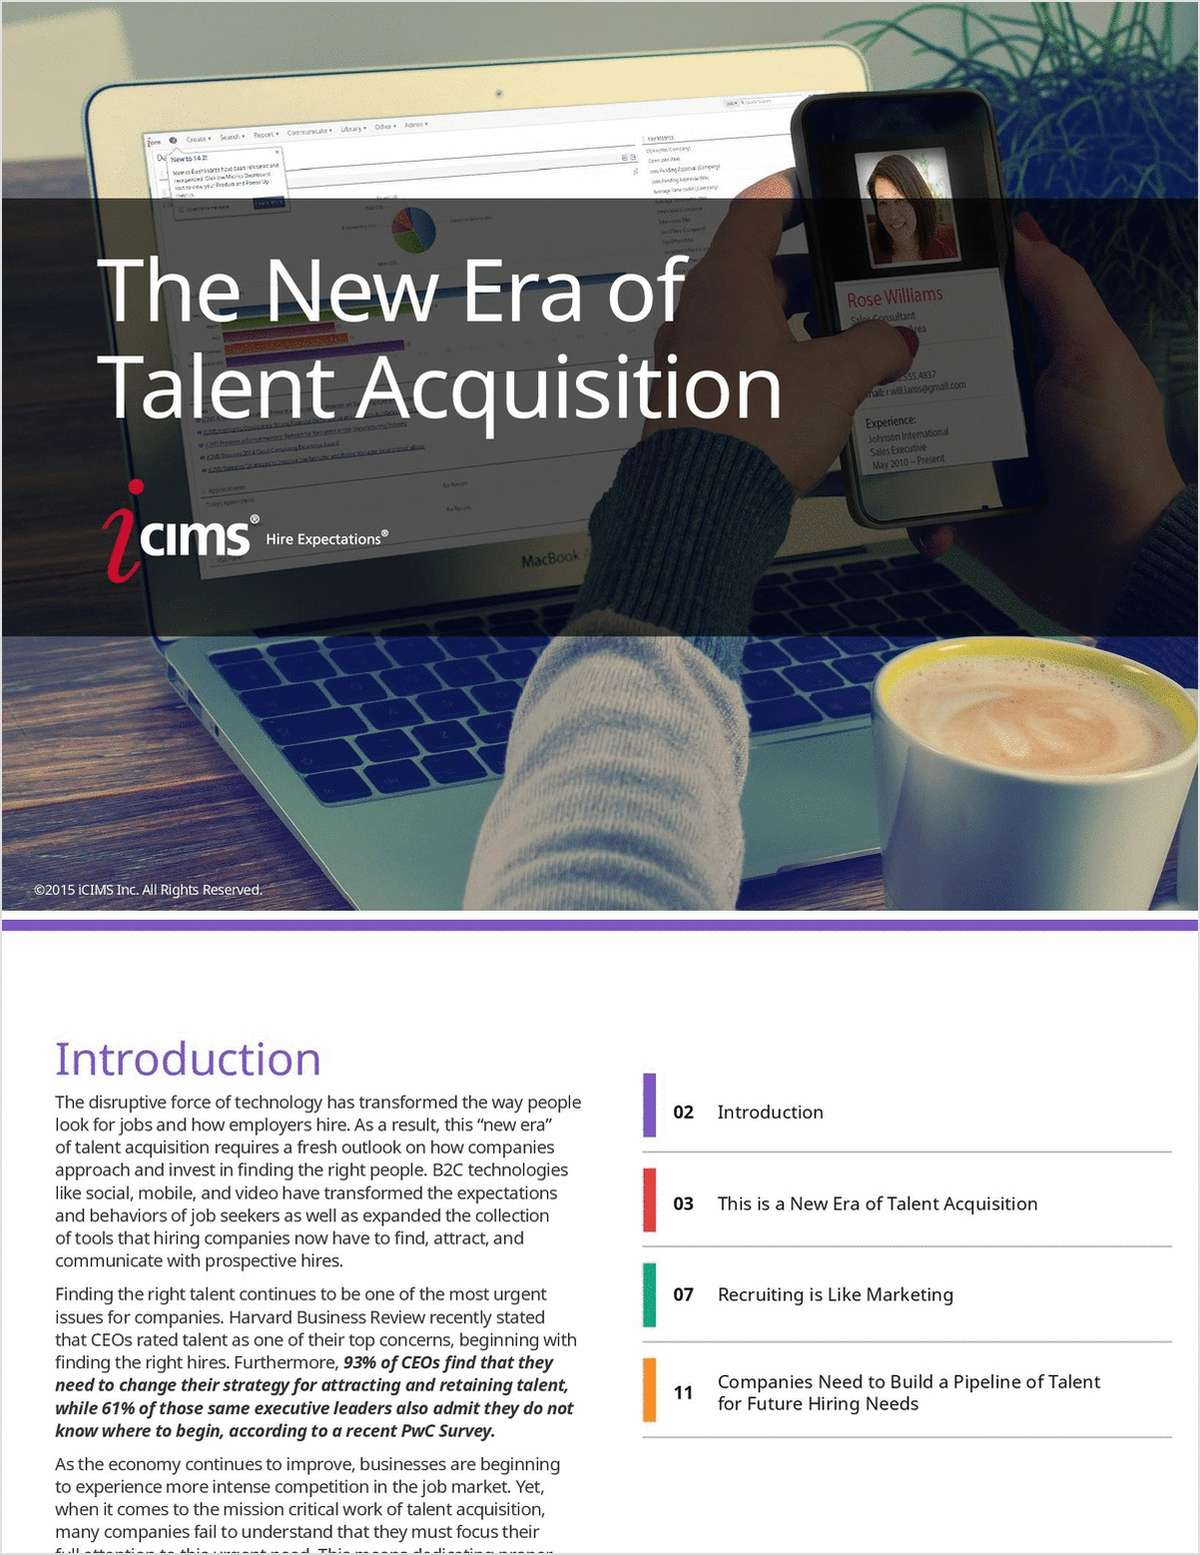 The New Era of Talent Acquisition